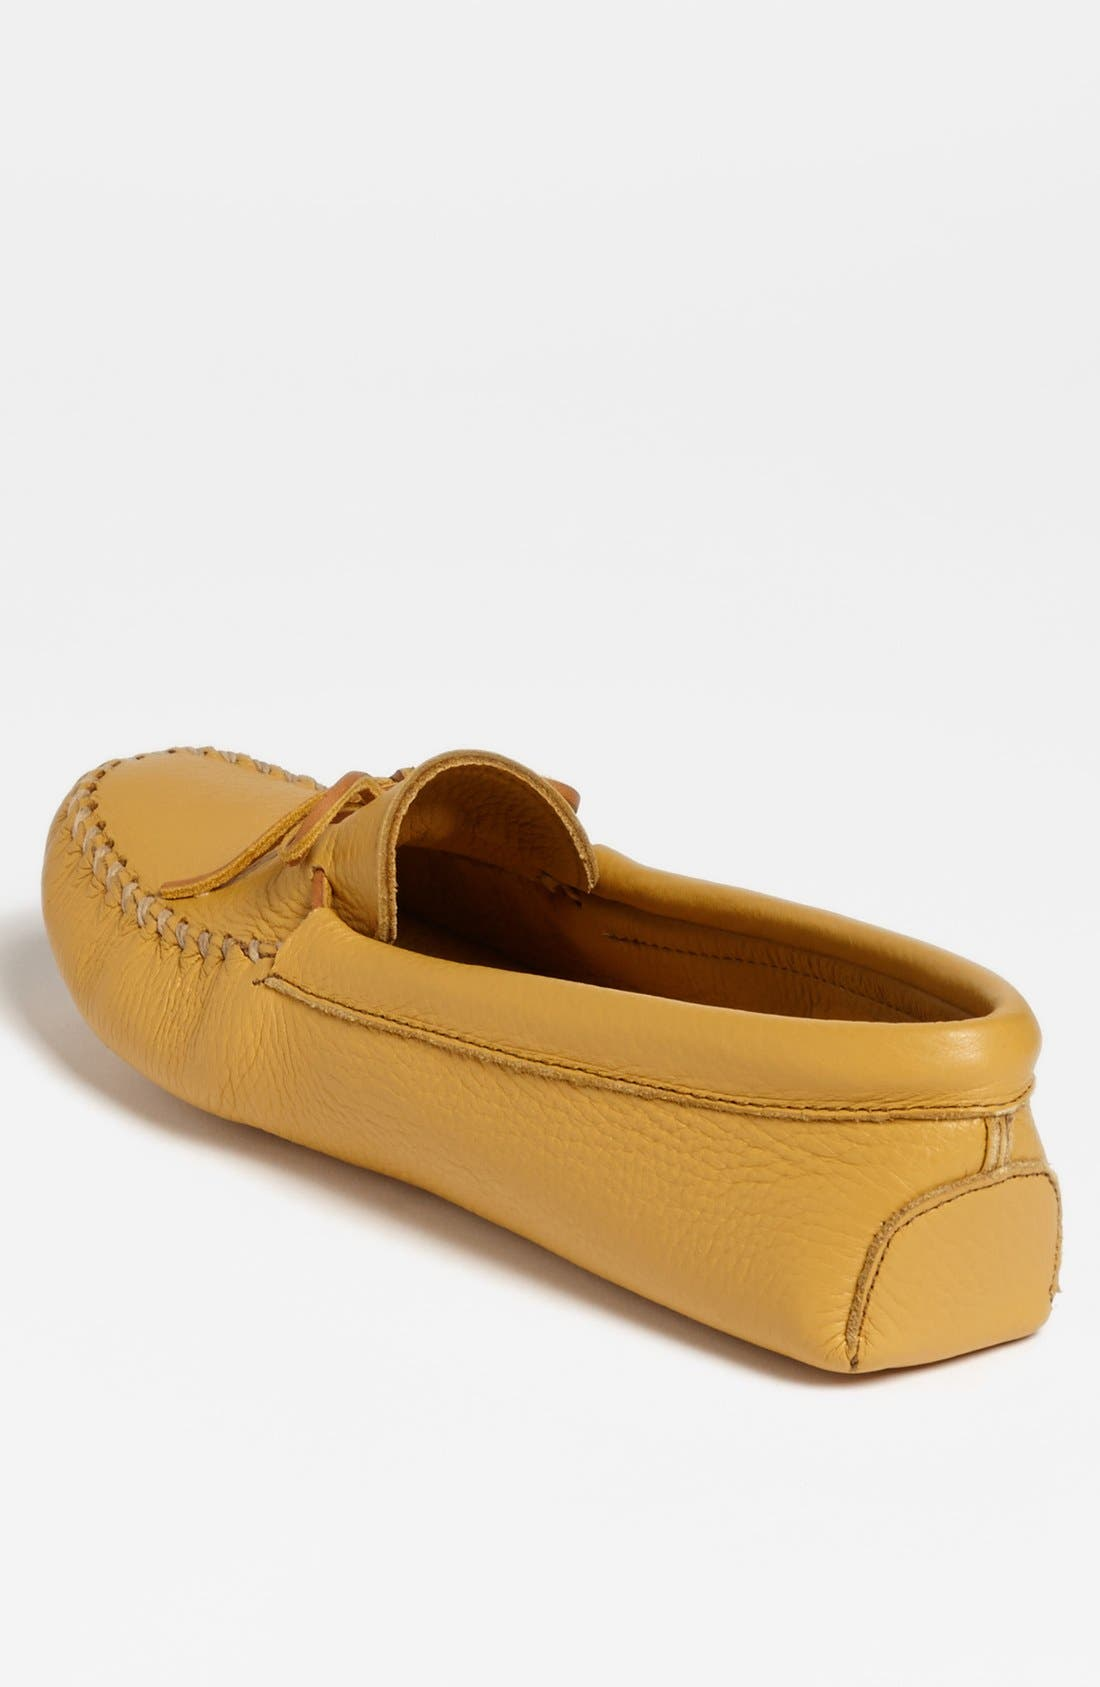 MINNETONKA, Deerskin Moccasin, Alternate thumbnail 2, color, NATURAL DEERSKIN